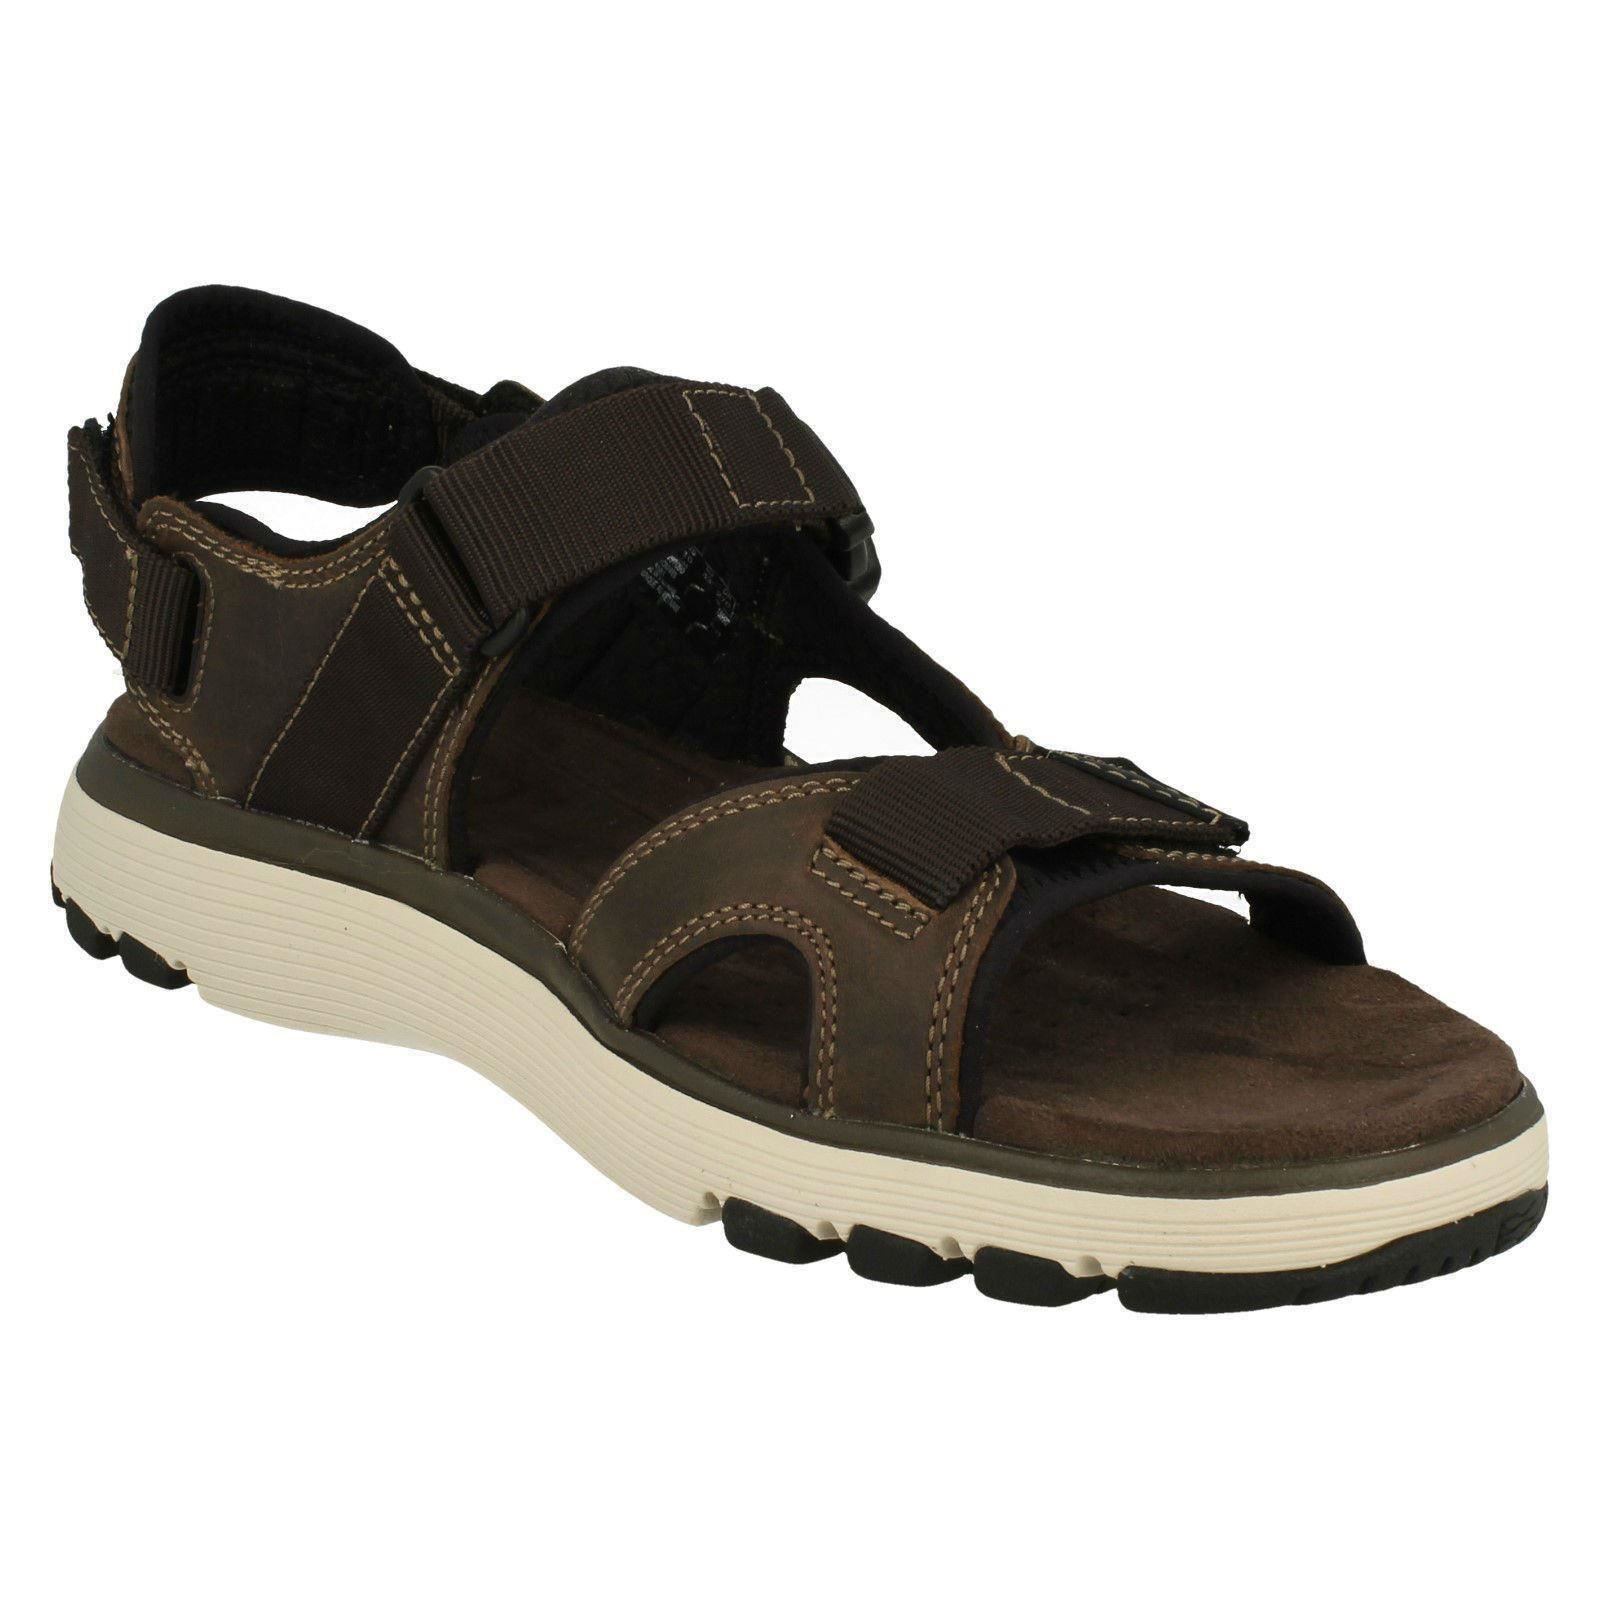 Mens Clarks Strapped Open Toe Sandals Un Trek Bar